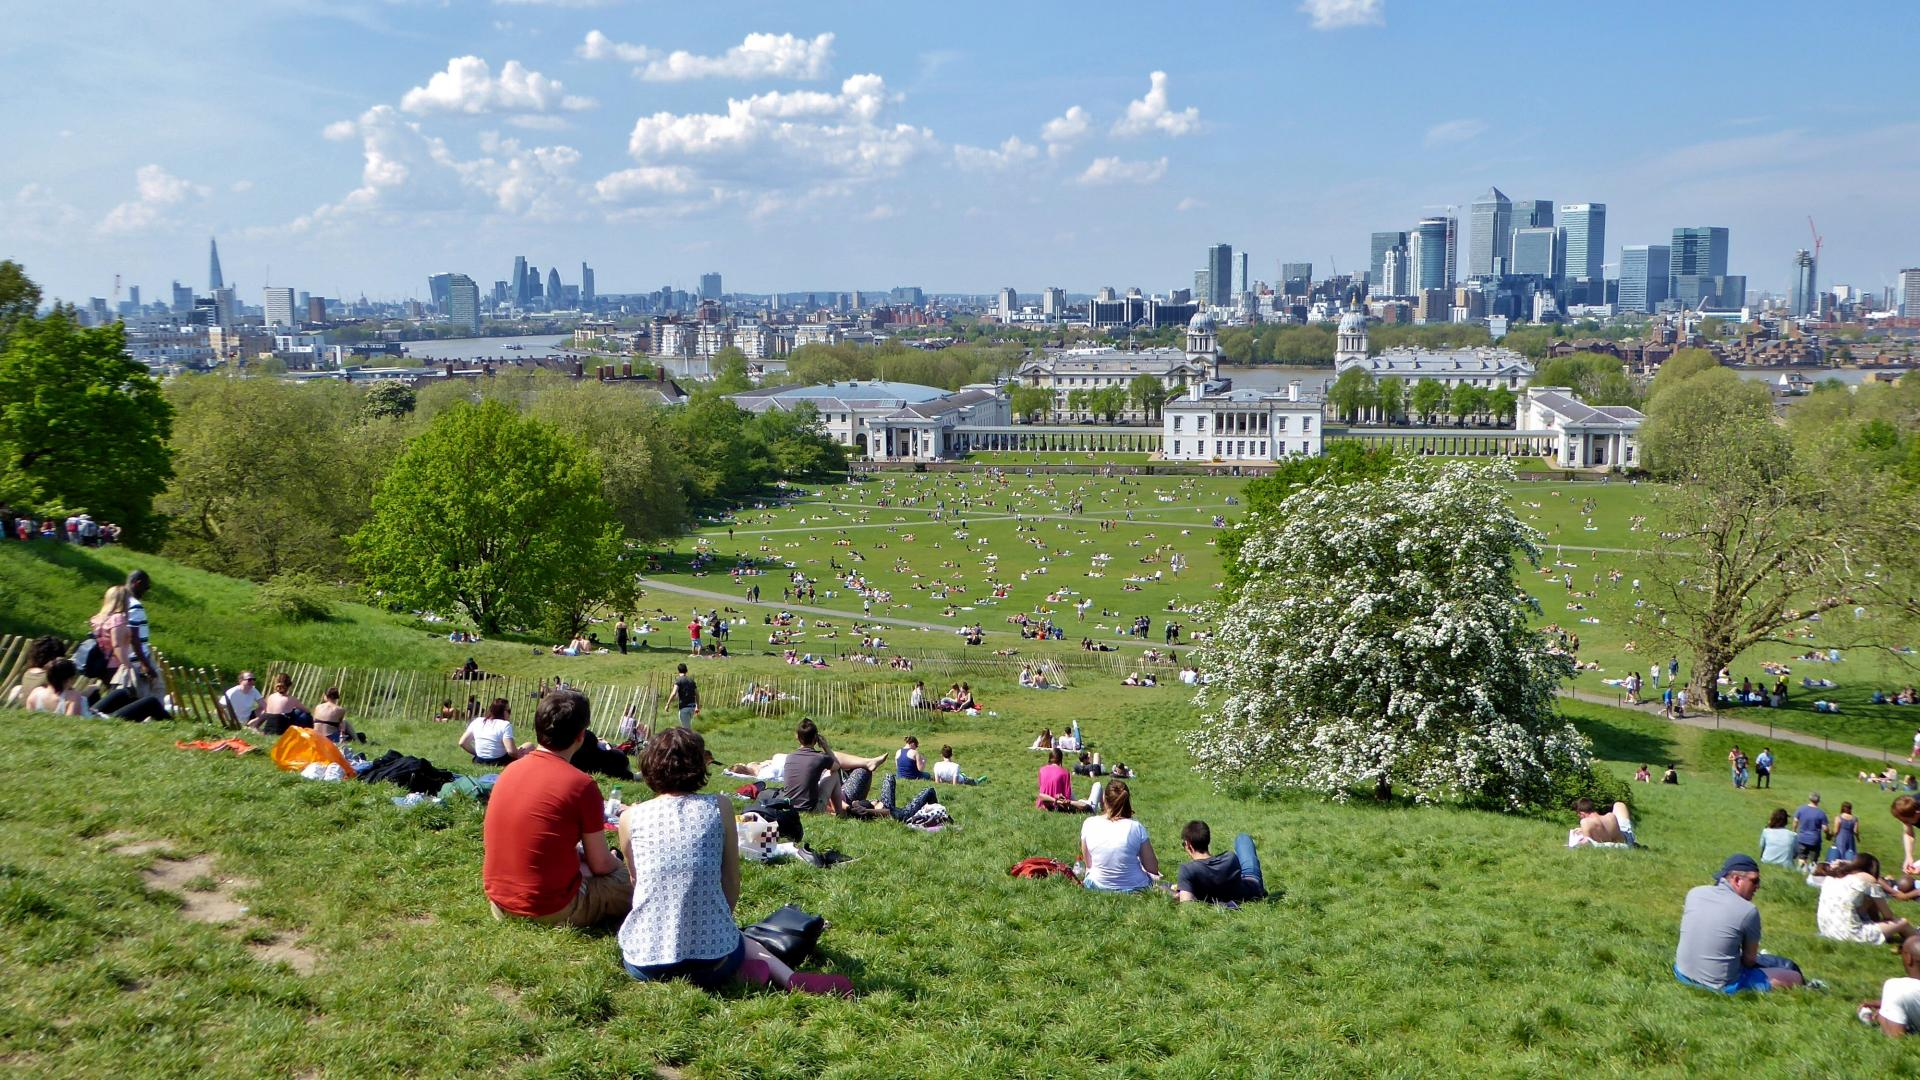 View across Greenwich Park taking in The Shard, the City of London, River Thames, National Maritime Museum, Queen's House, the Old Royal Naval College, and Canary Wharf. Greenwich Park, Greenwich, London